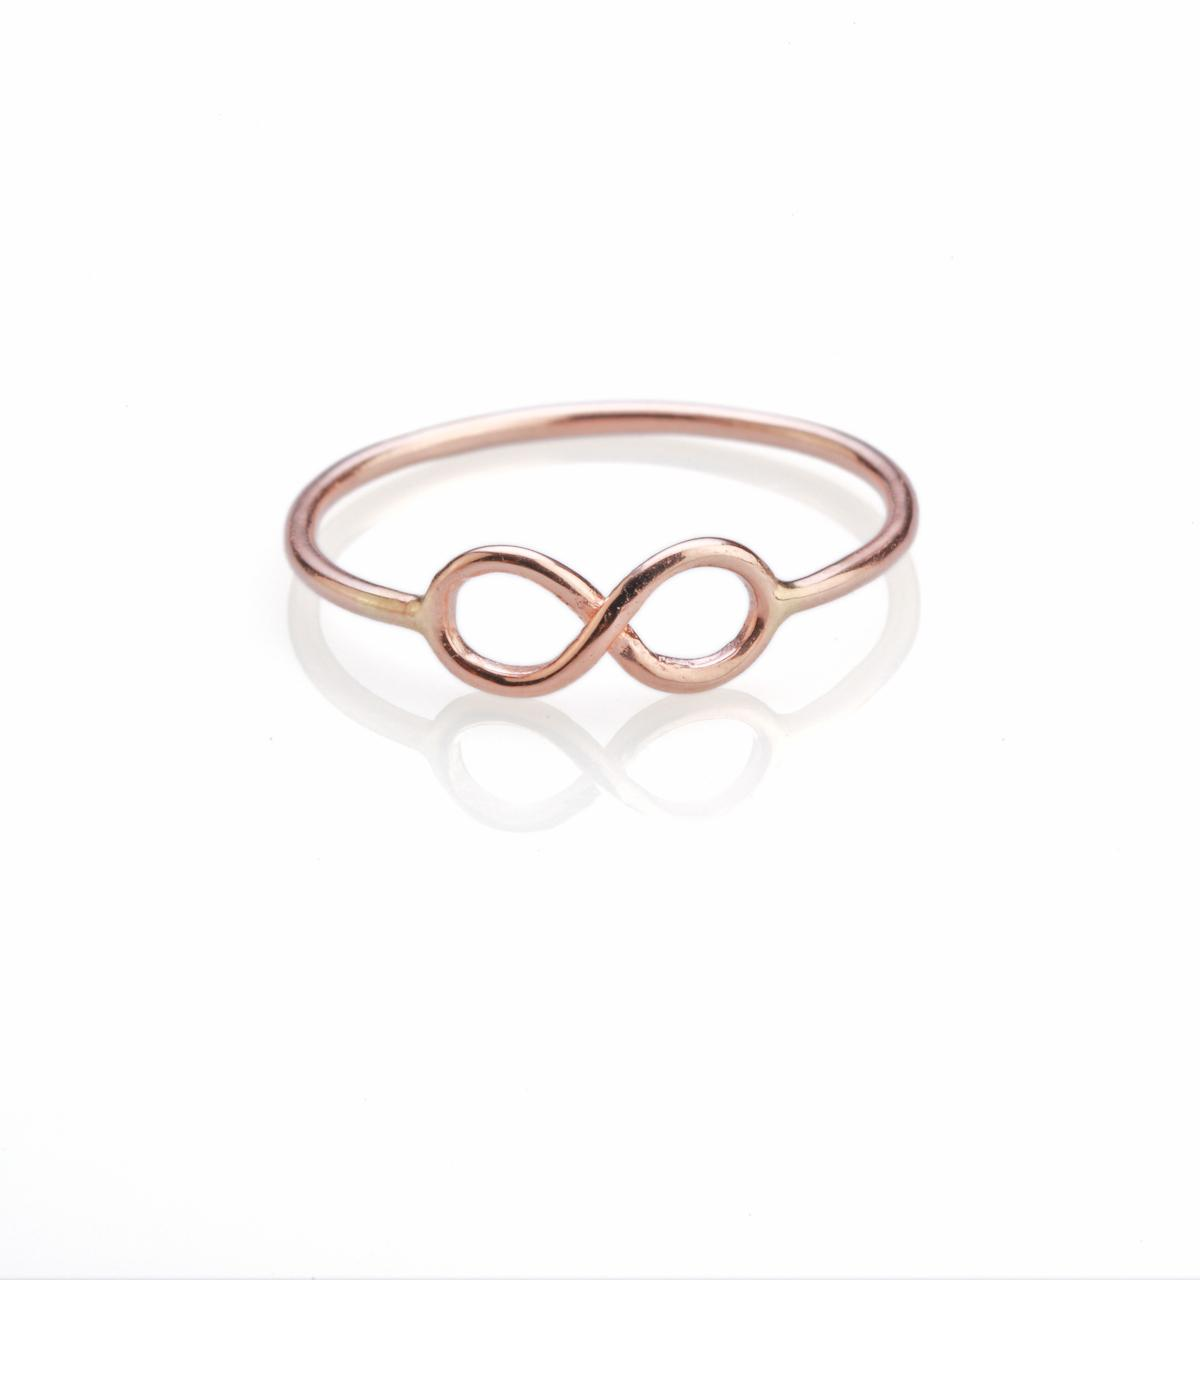 Rose Gold Infinity Ring